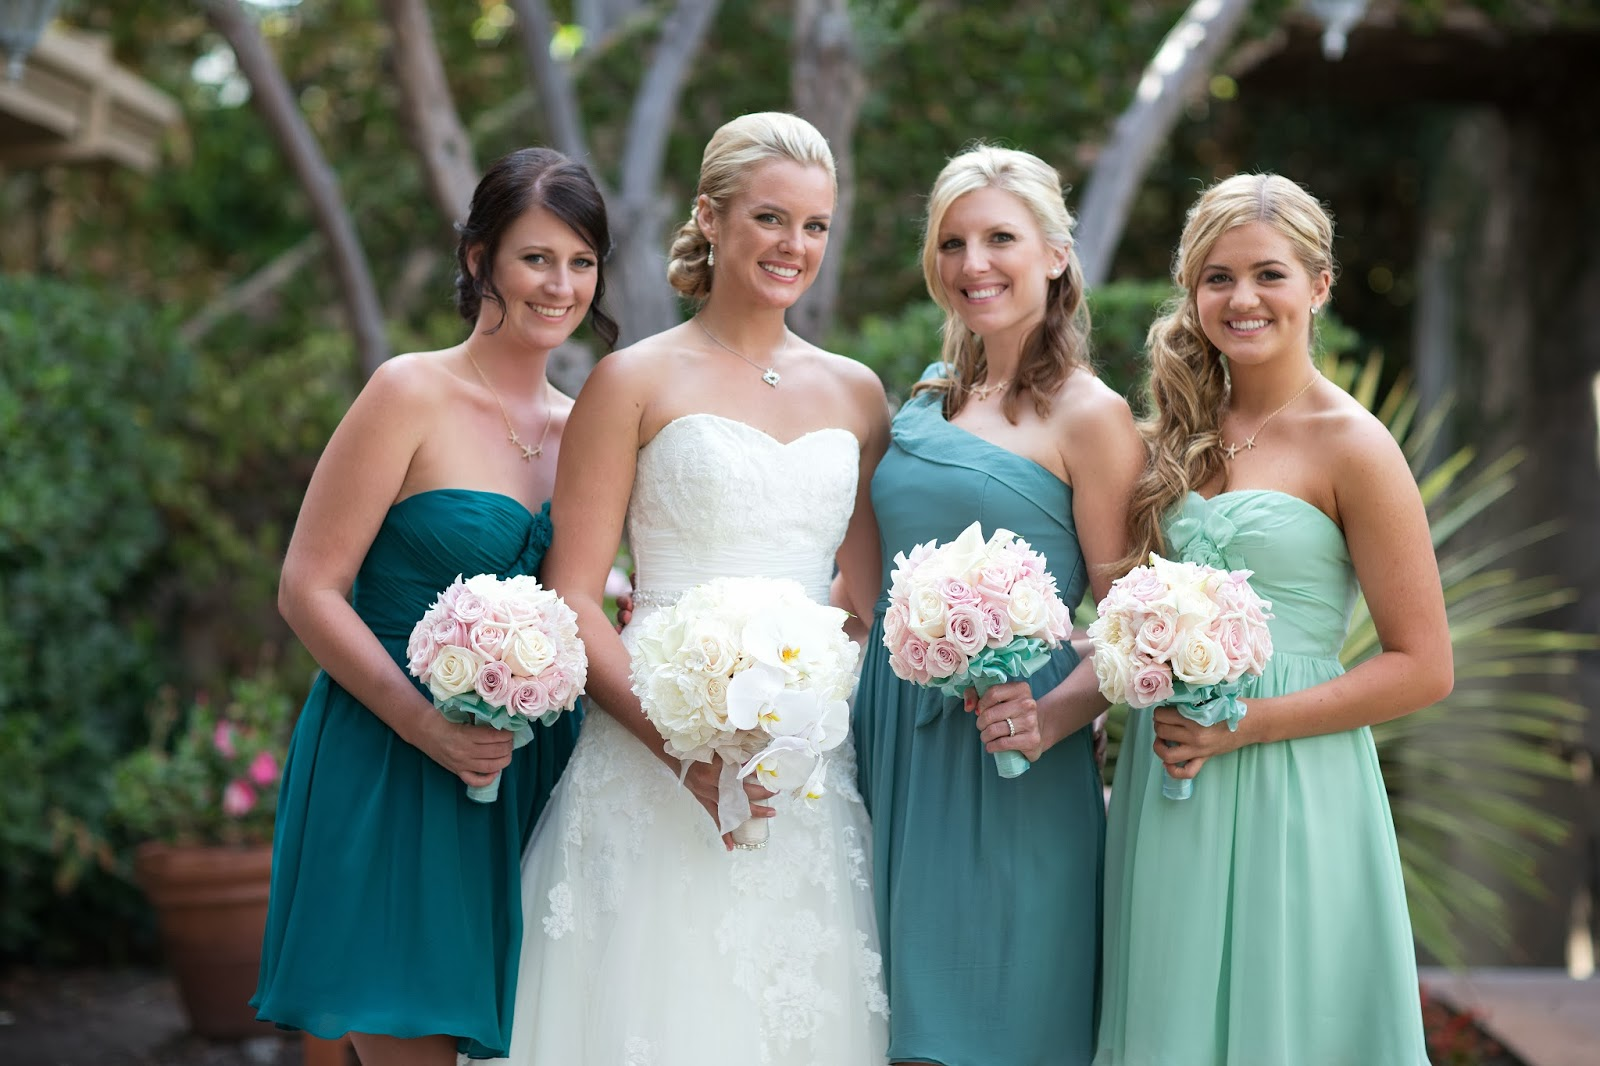 Our bella bridesmaids bella bridesmaids bella bridesmaid orange county bride ashley designer ivy aster styles coming up roses may flowers and paloma fabric matte chiffon ombrellifo Images